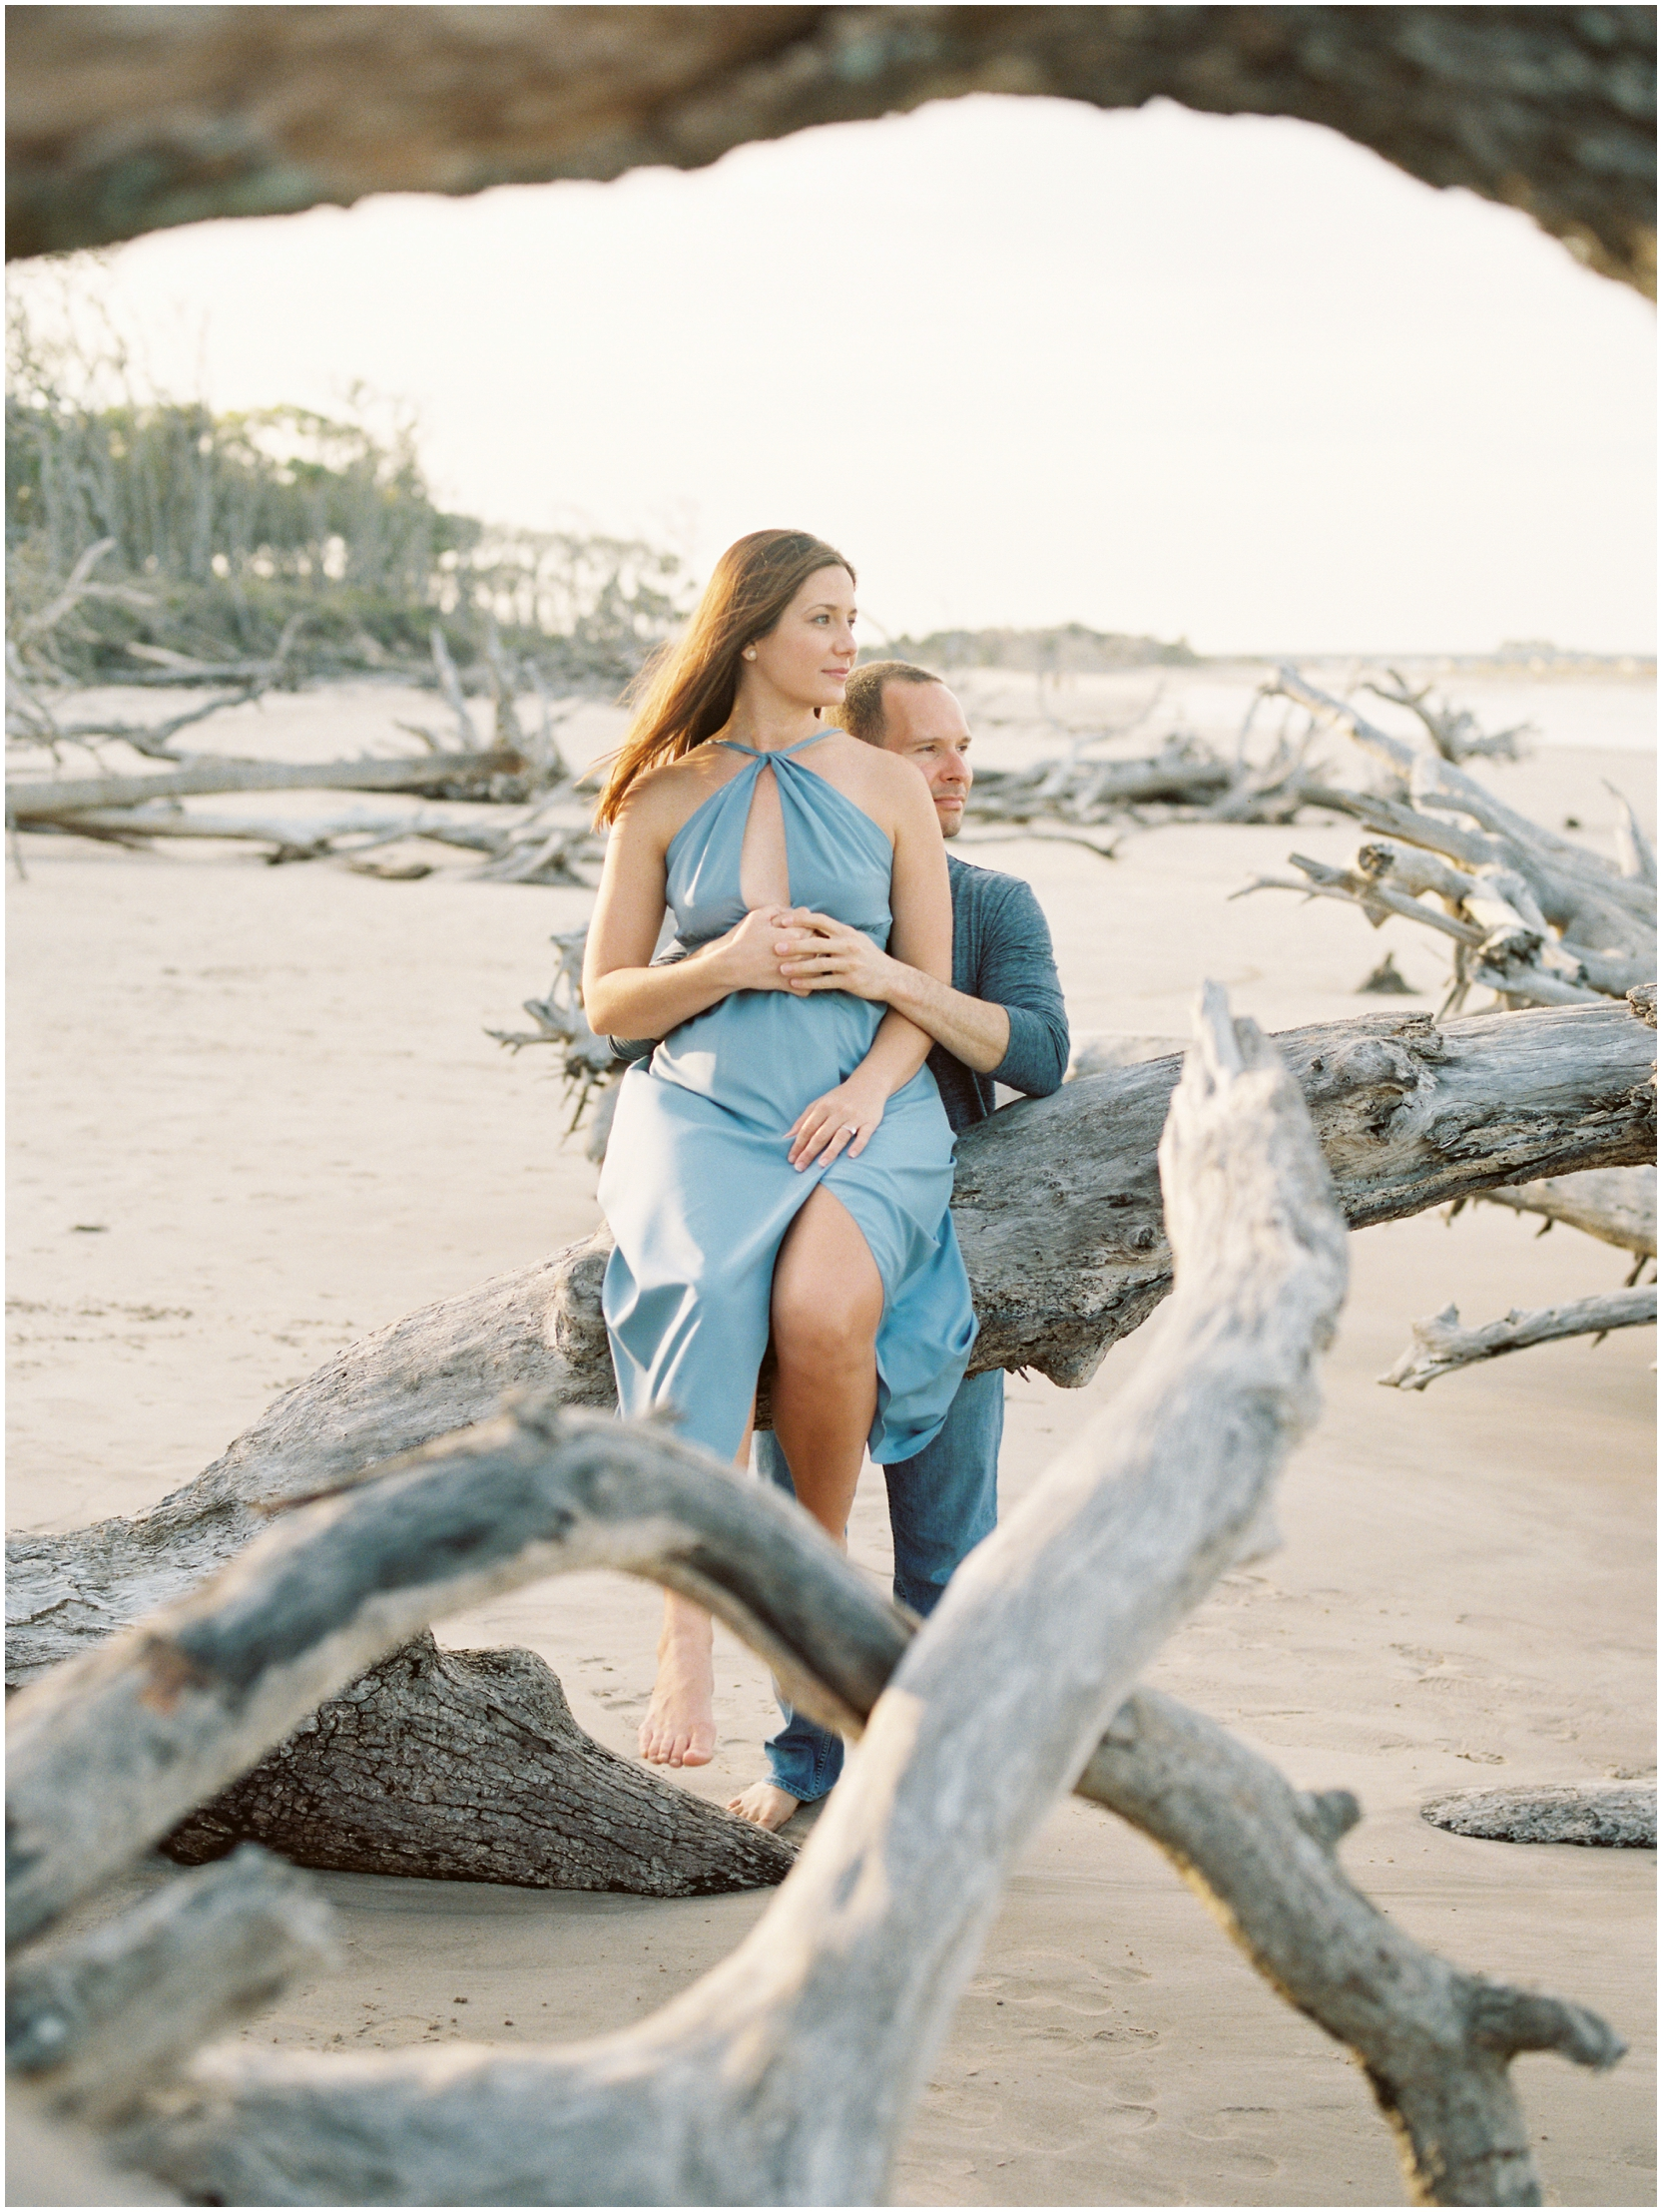 Lisa Silva Photography -Engagement Session at Big Talbot Island- Jacksonville and North East Florida Fine Art Film Photographer_0044.jpg